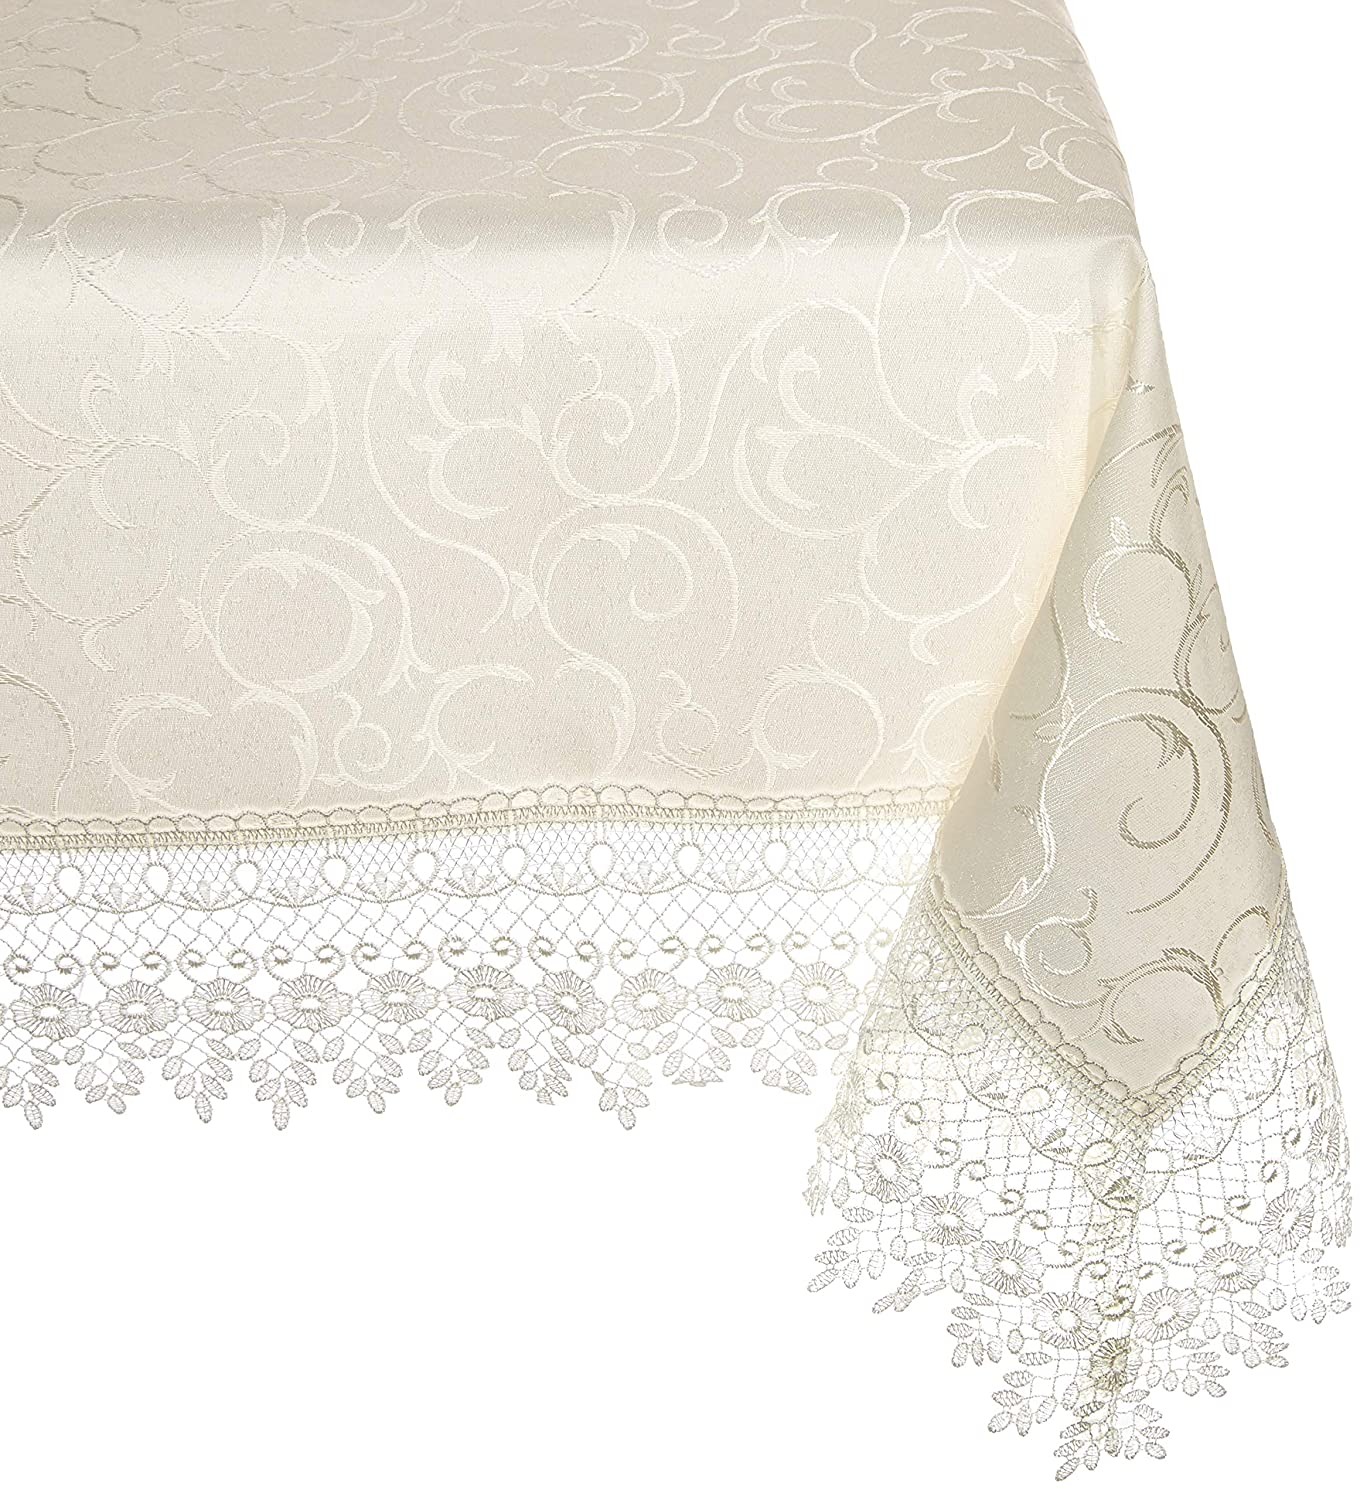 Rectangular 70 X 160 HomeCrate Flower Bow Vintage Lace Design Table Cloths White 70 X 160 VL-FlowerBowTablecloth-70068-WH-9